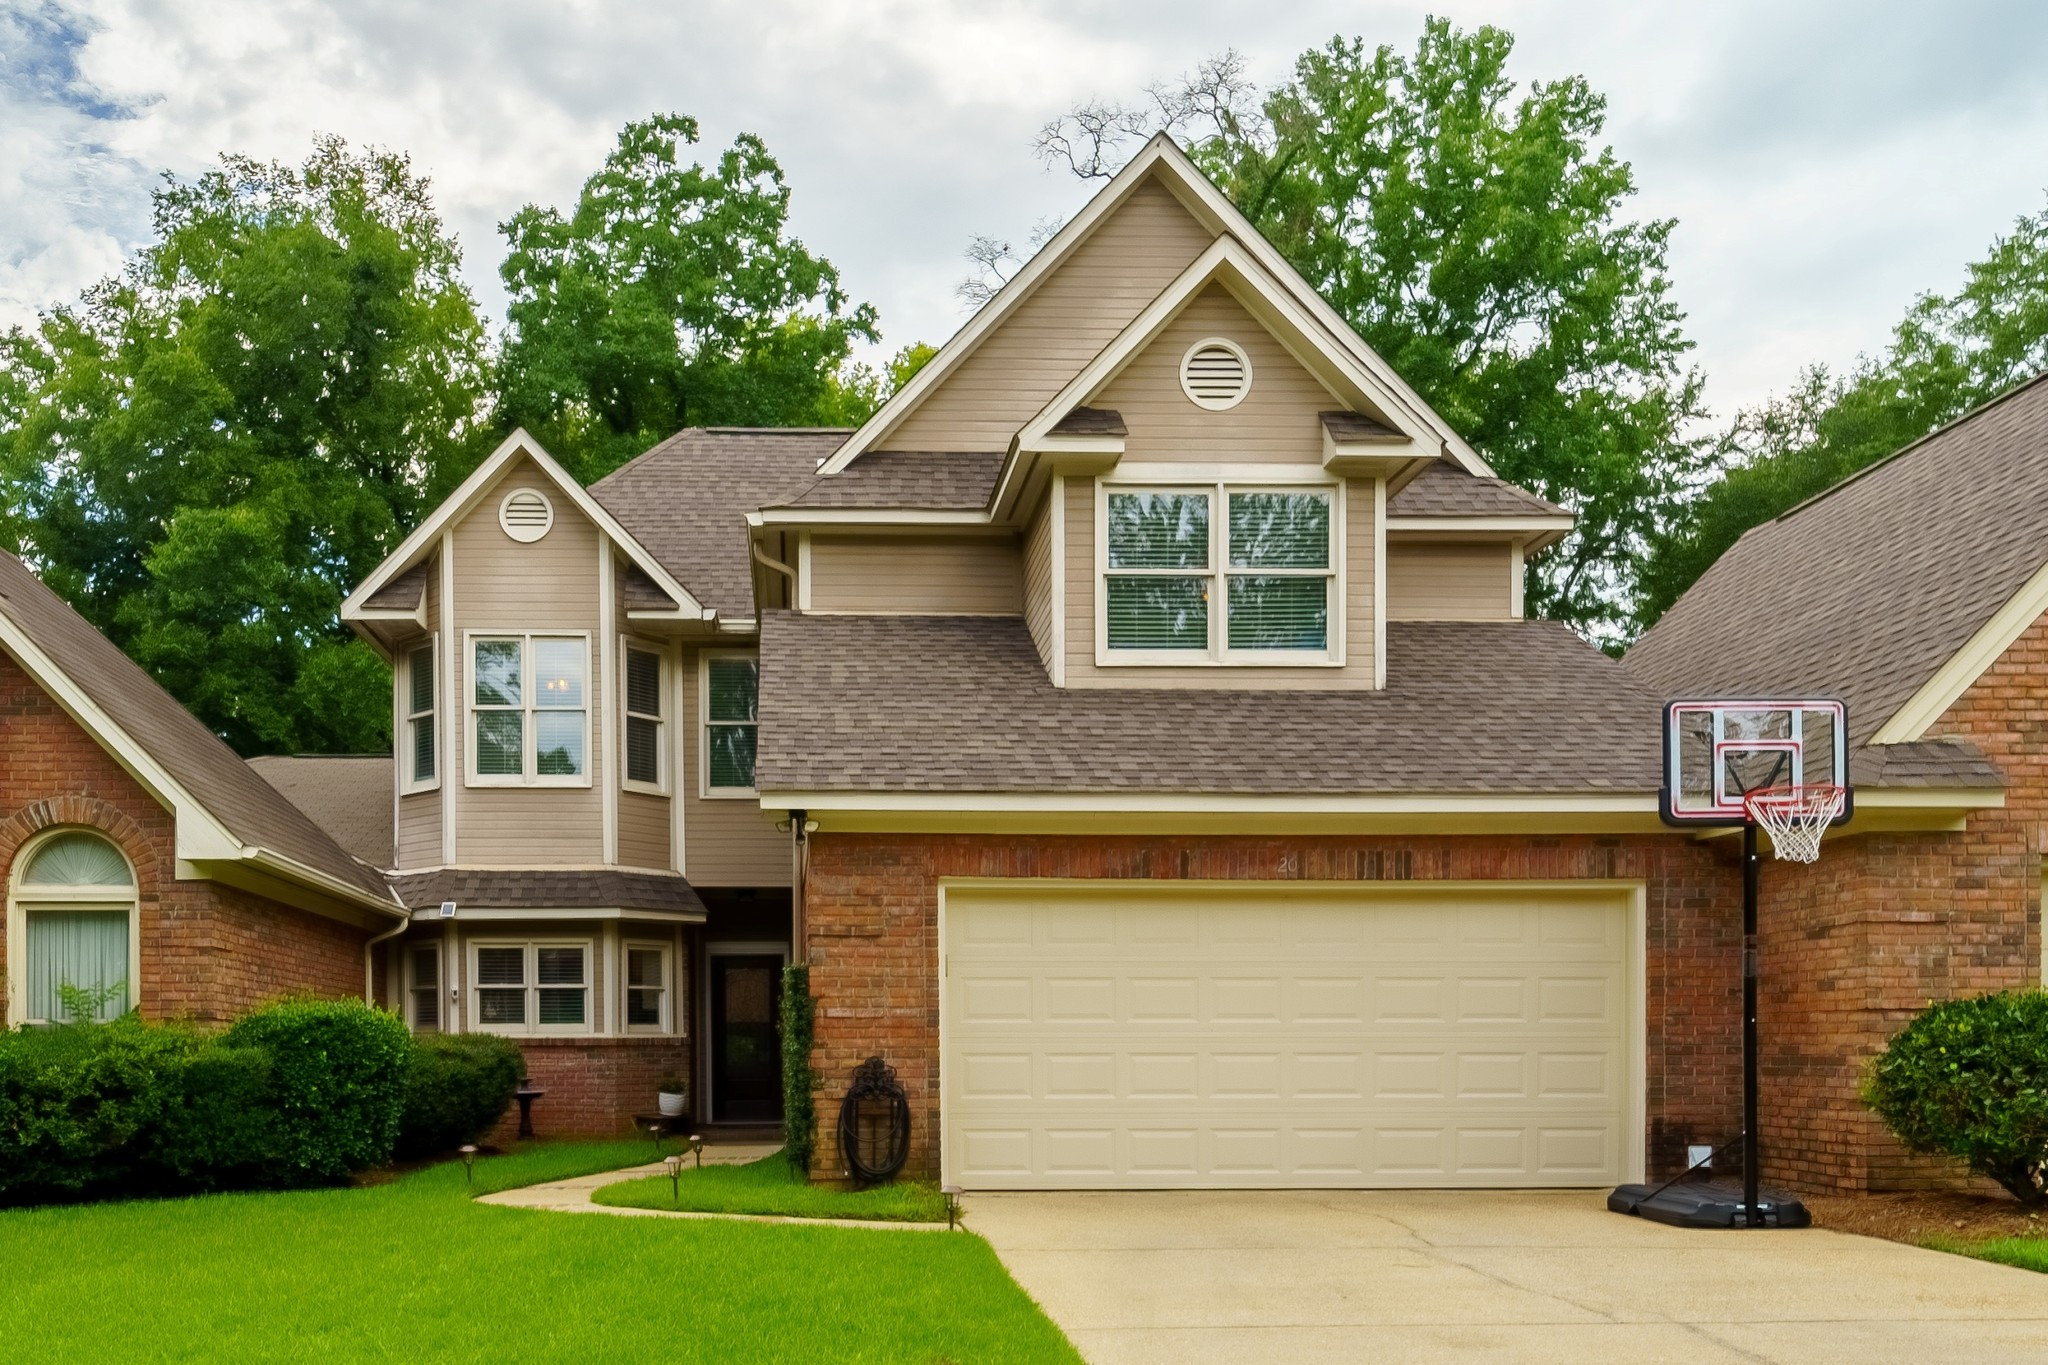 2568 SqFt House In Park Place